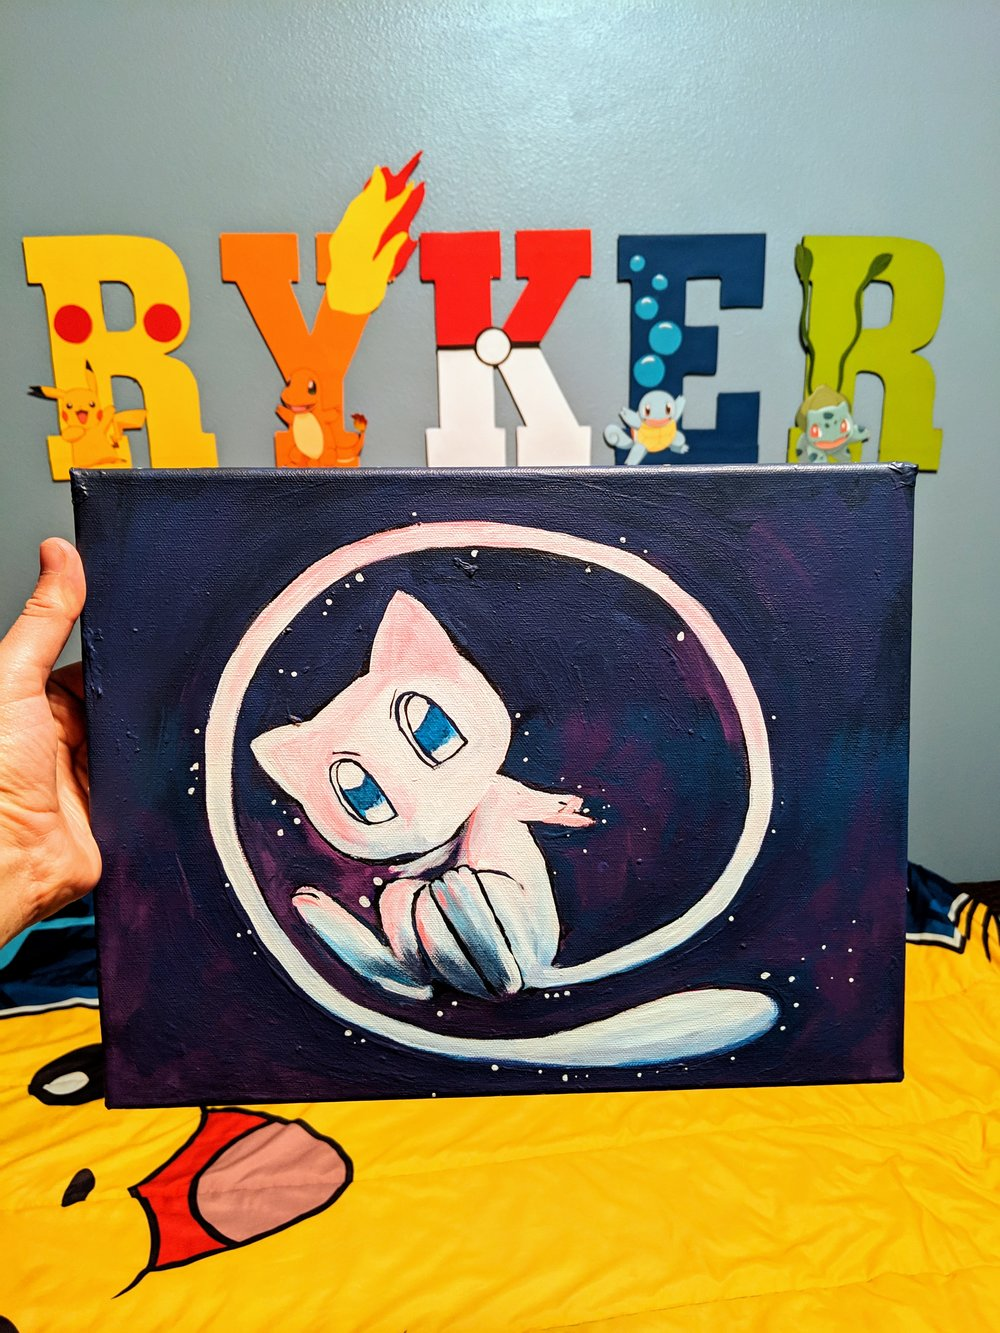 Mew painting in Ryker's Pokemon themed side of his room.